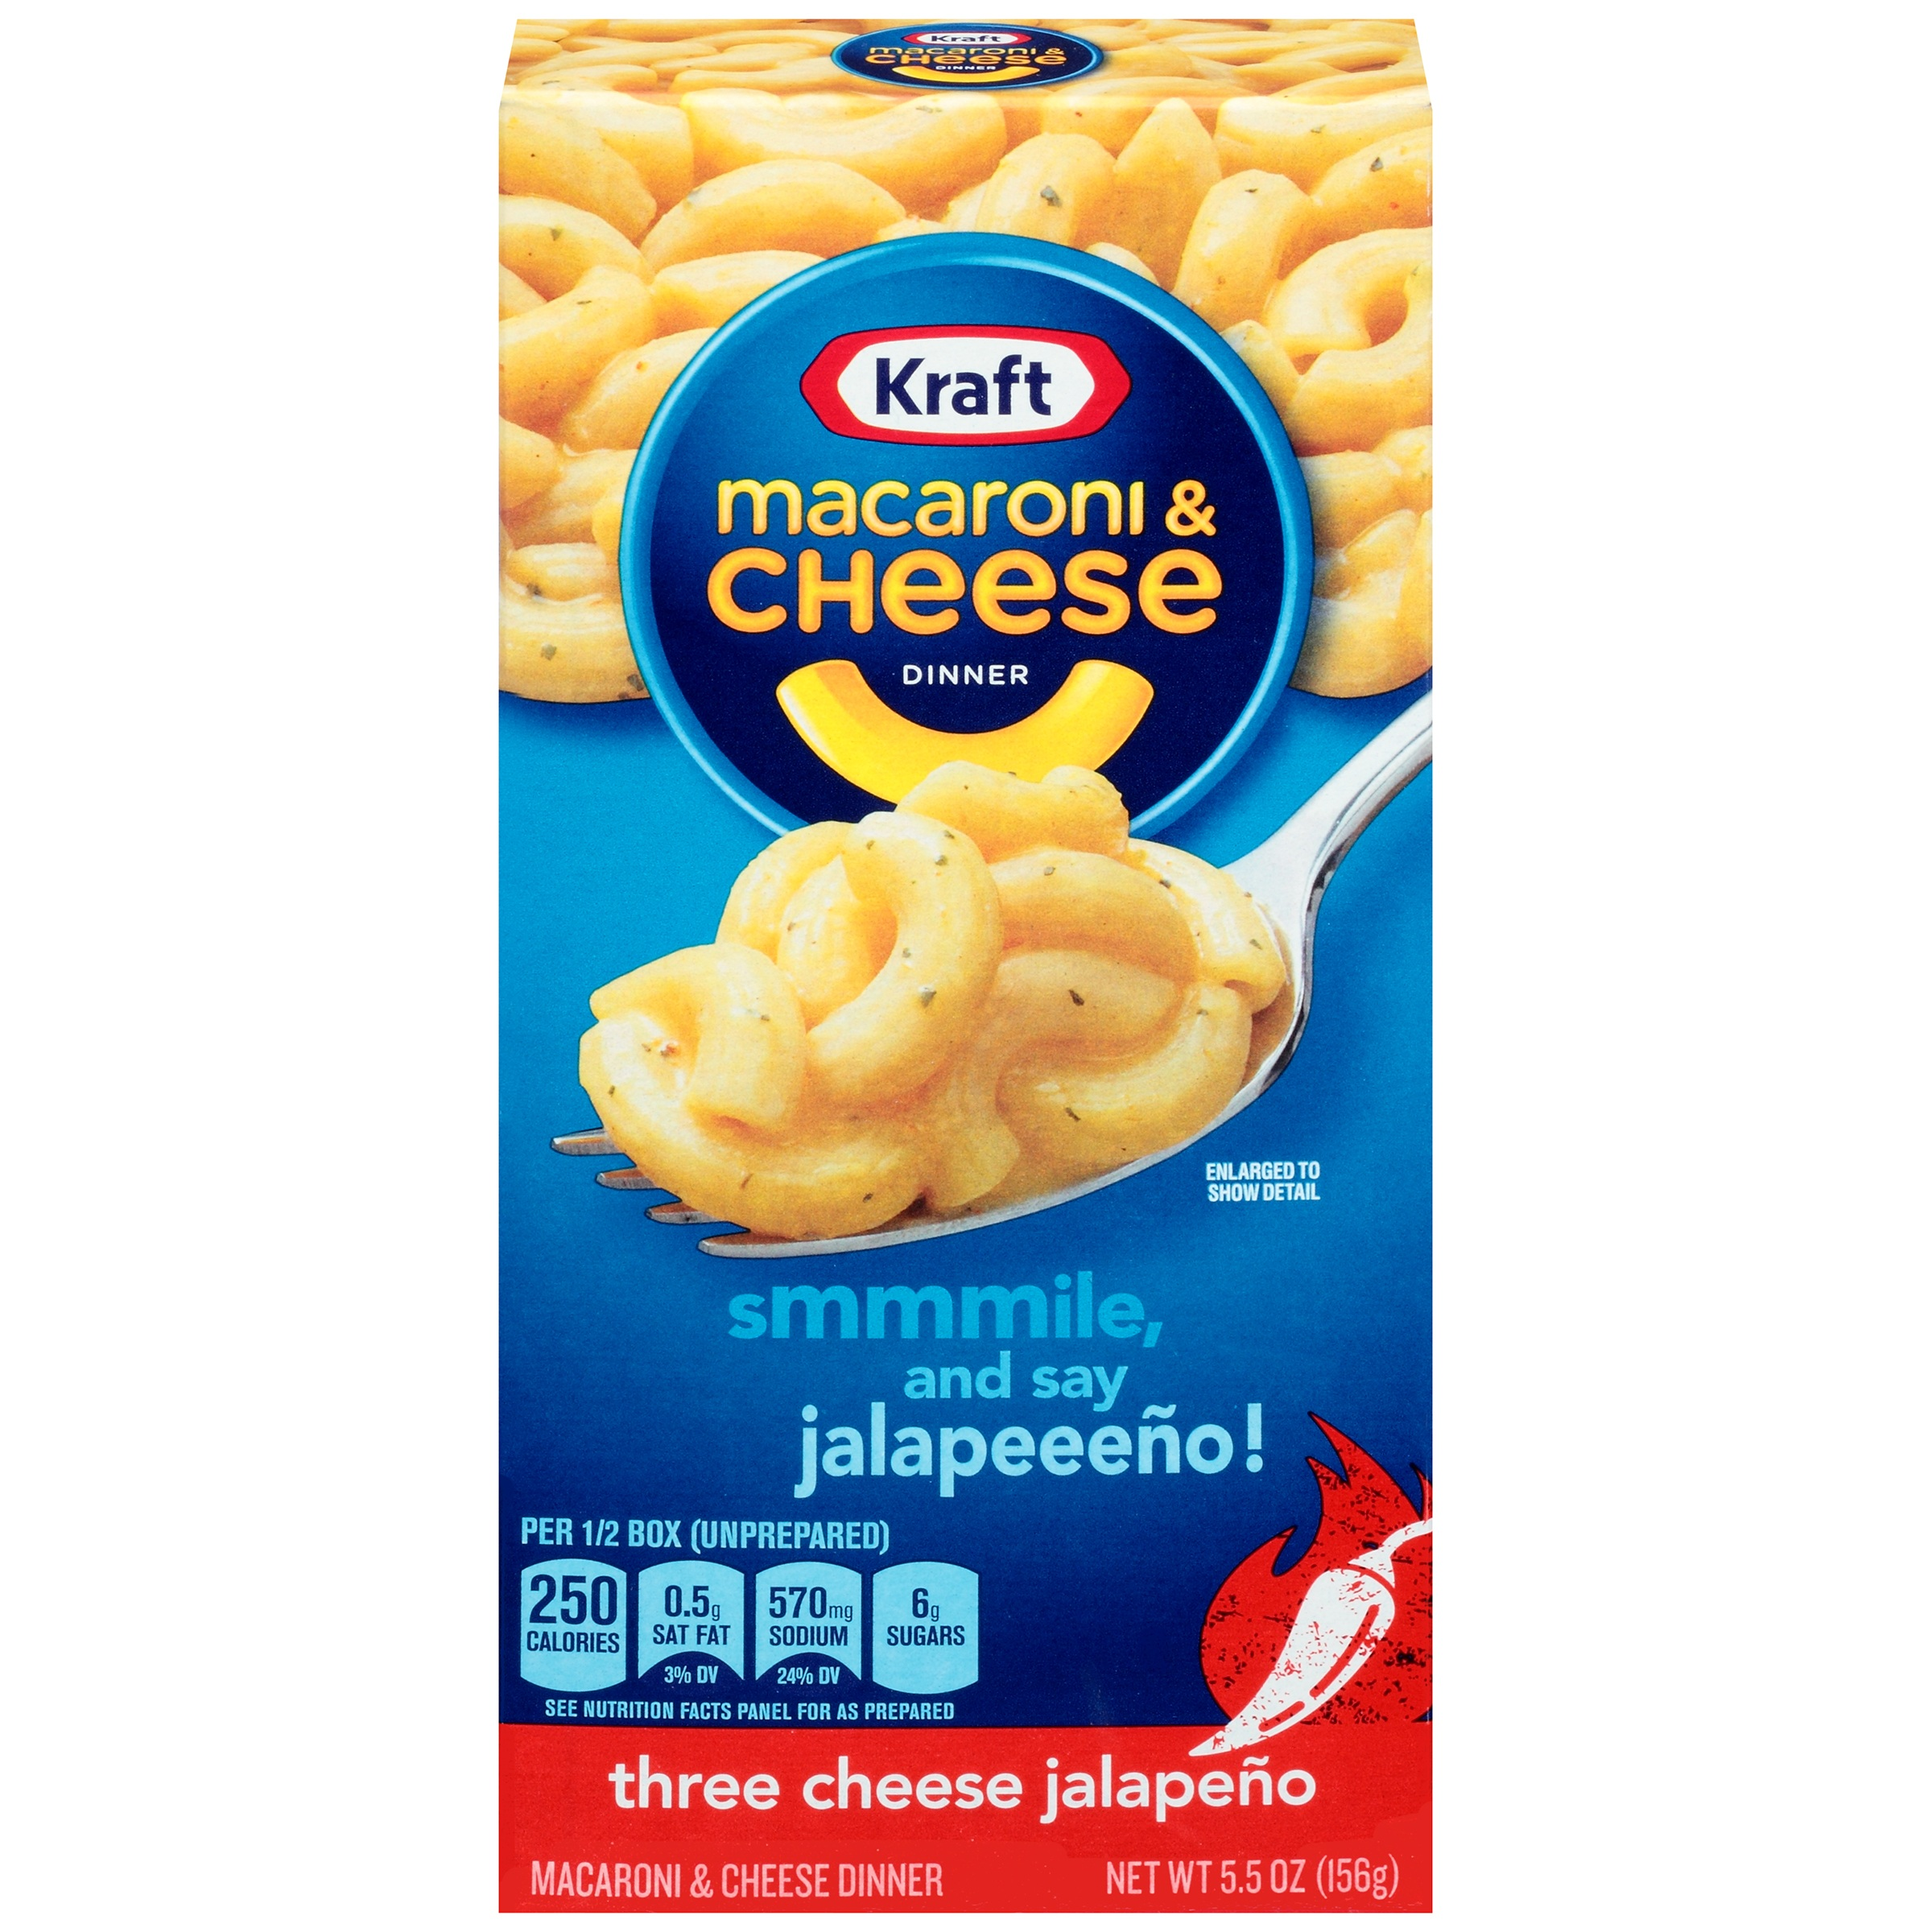 Kraft macaroni and cheese nutrition facts prepared for Craft macaroni and cheese